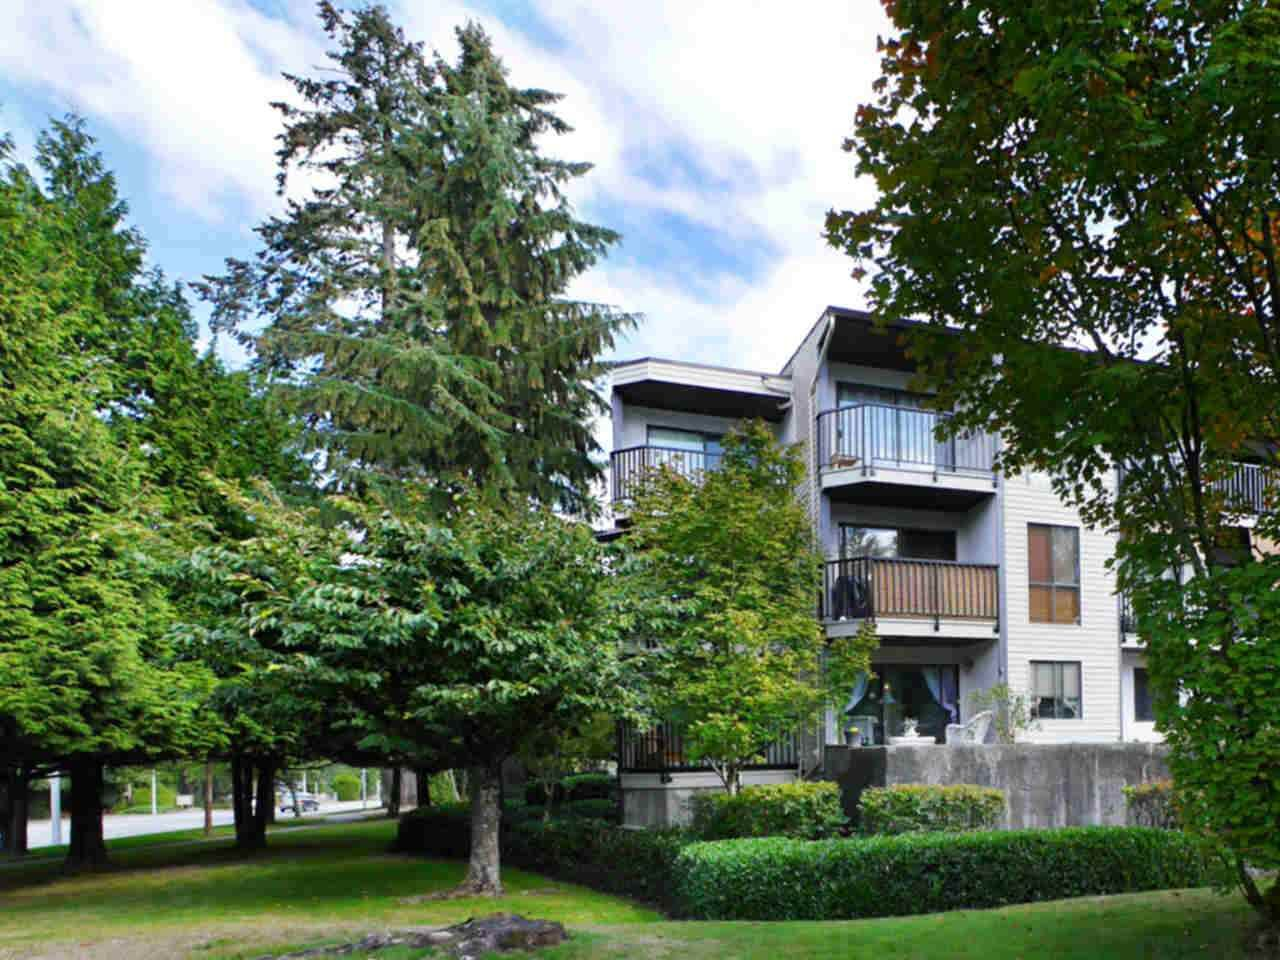 """Photo 2: Photos: 105 9952 149 Street in Surrey: Guildford Condo for sale in """"Tall Timbers"""" (North Surrey)  : MLS®# R2107429"""